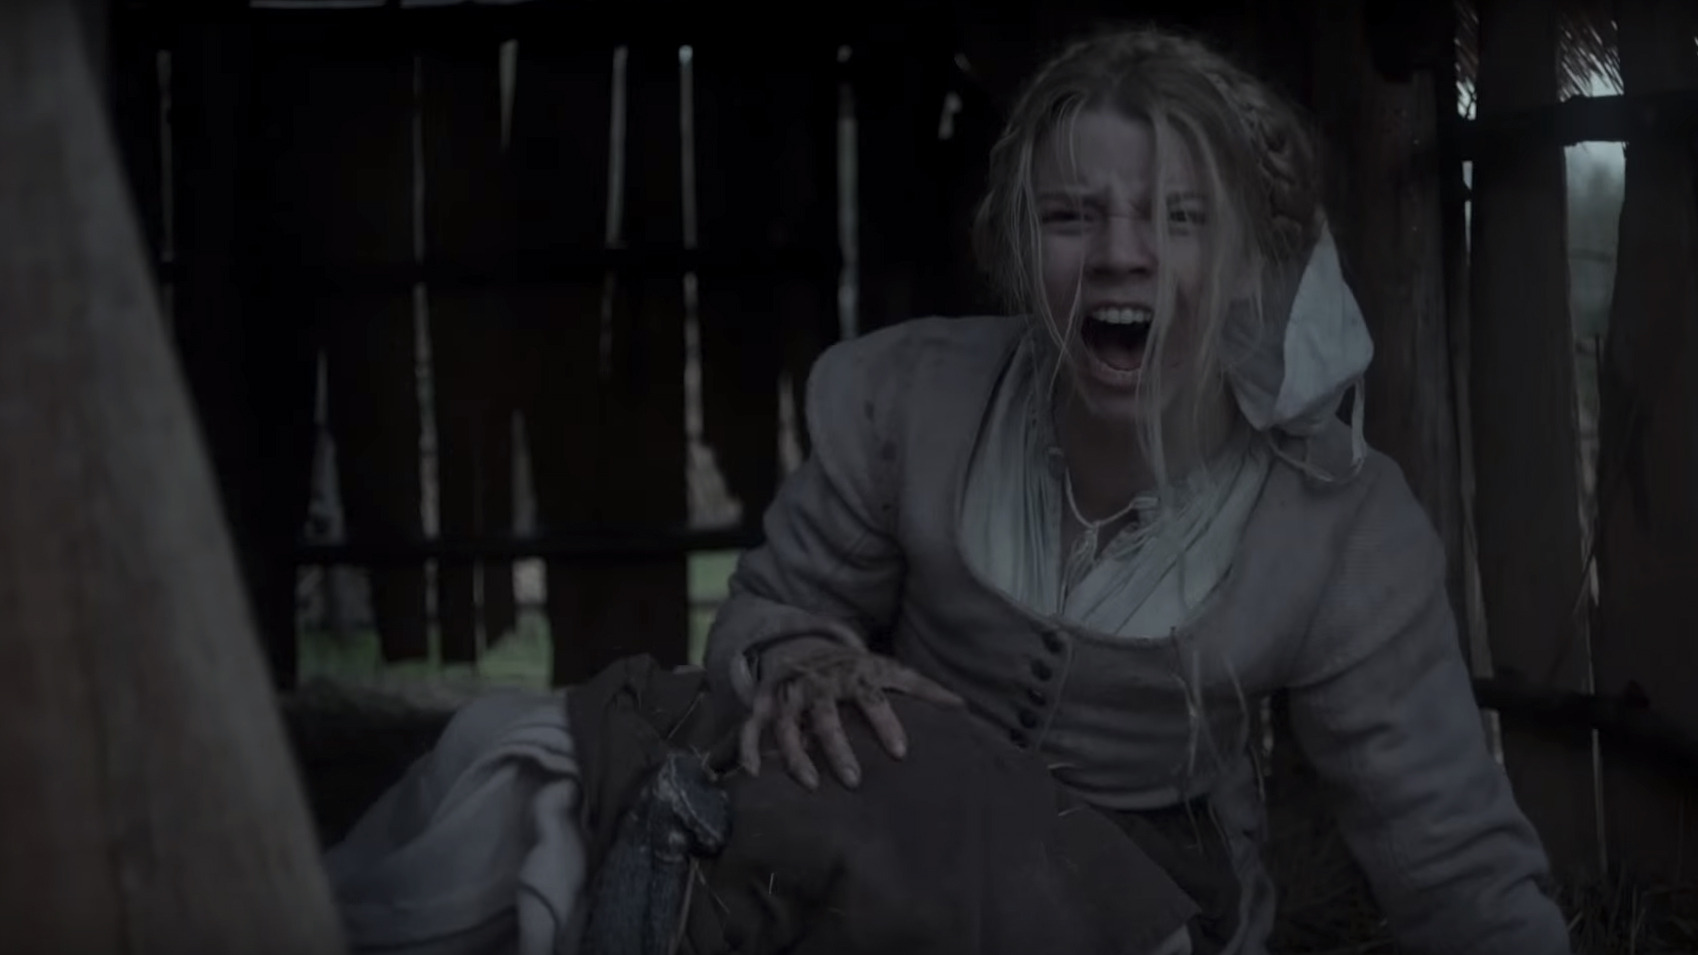 'La bruja' ('The Witch'). Sitges 2015